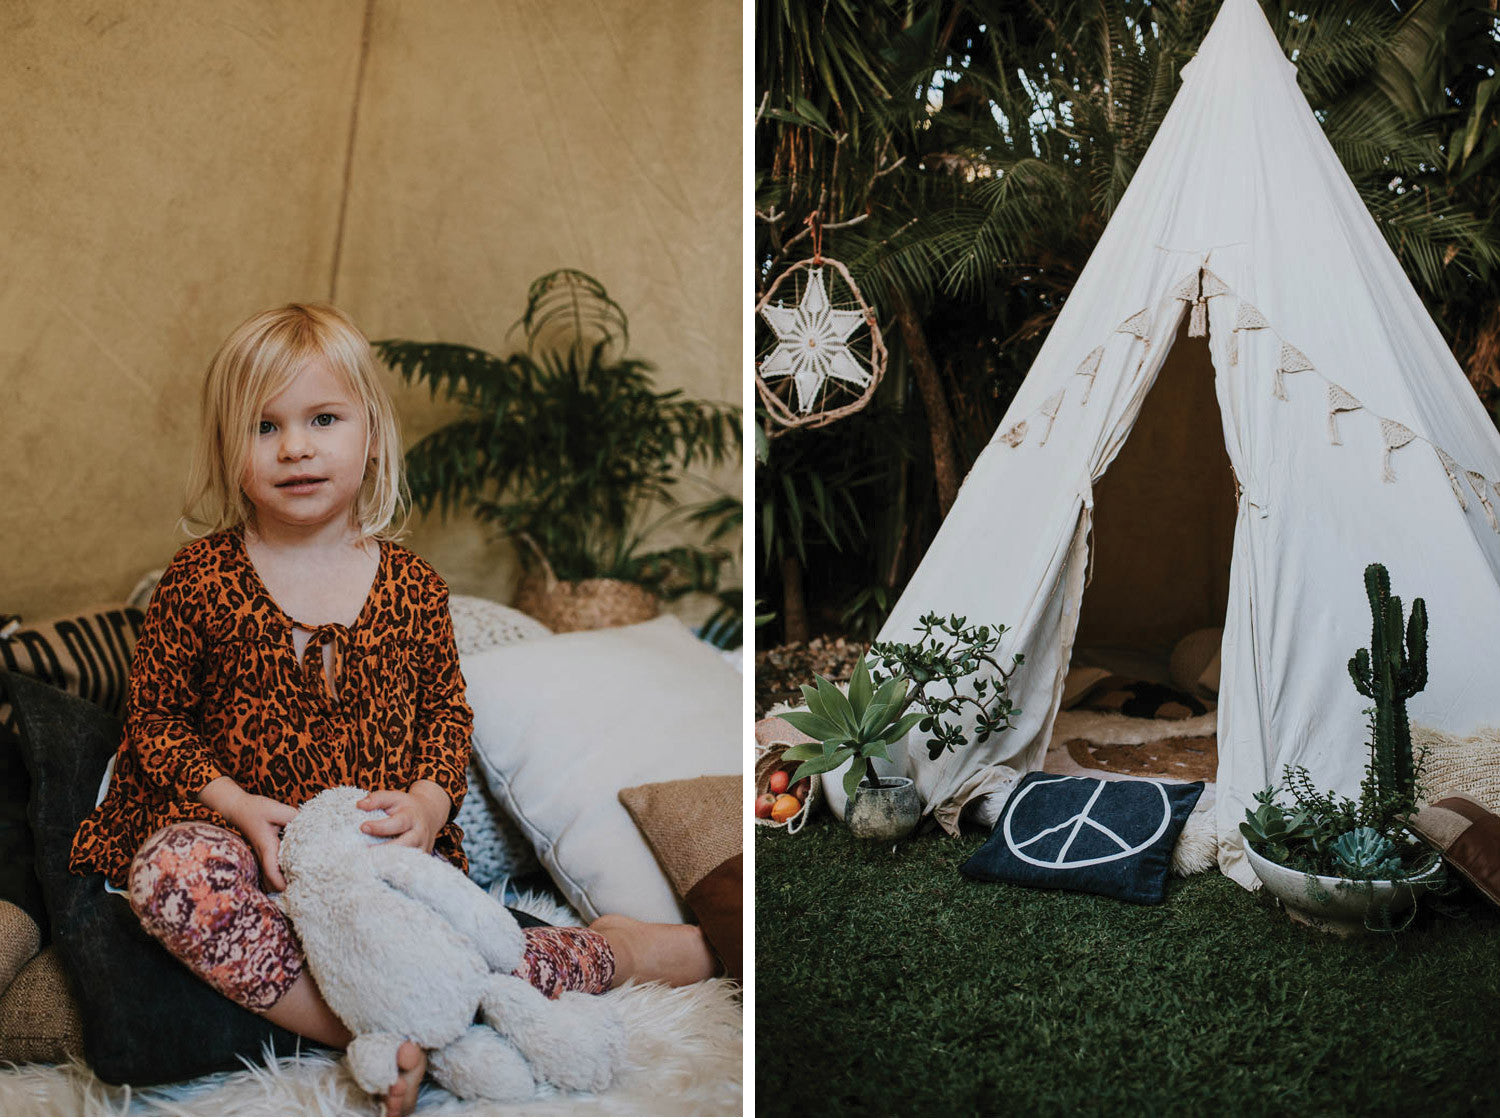 Coco in a teepee